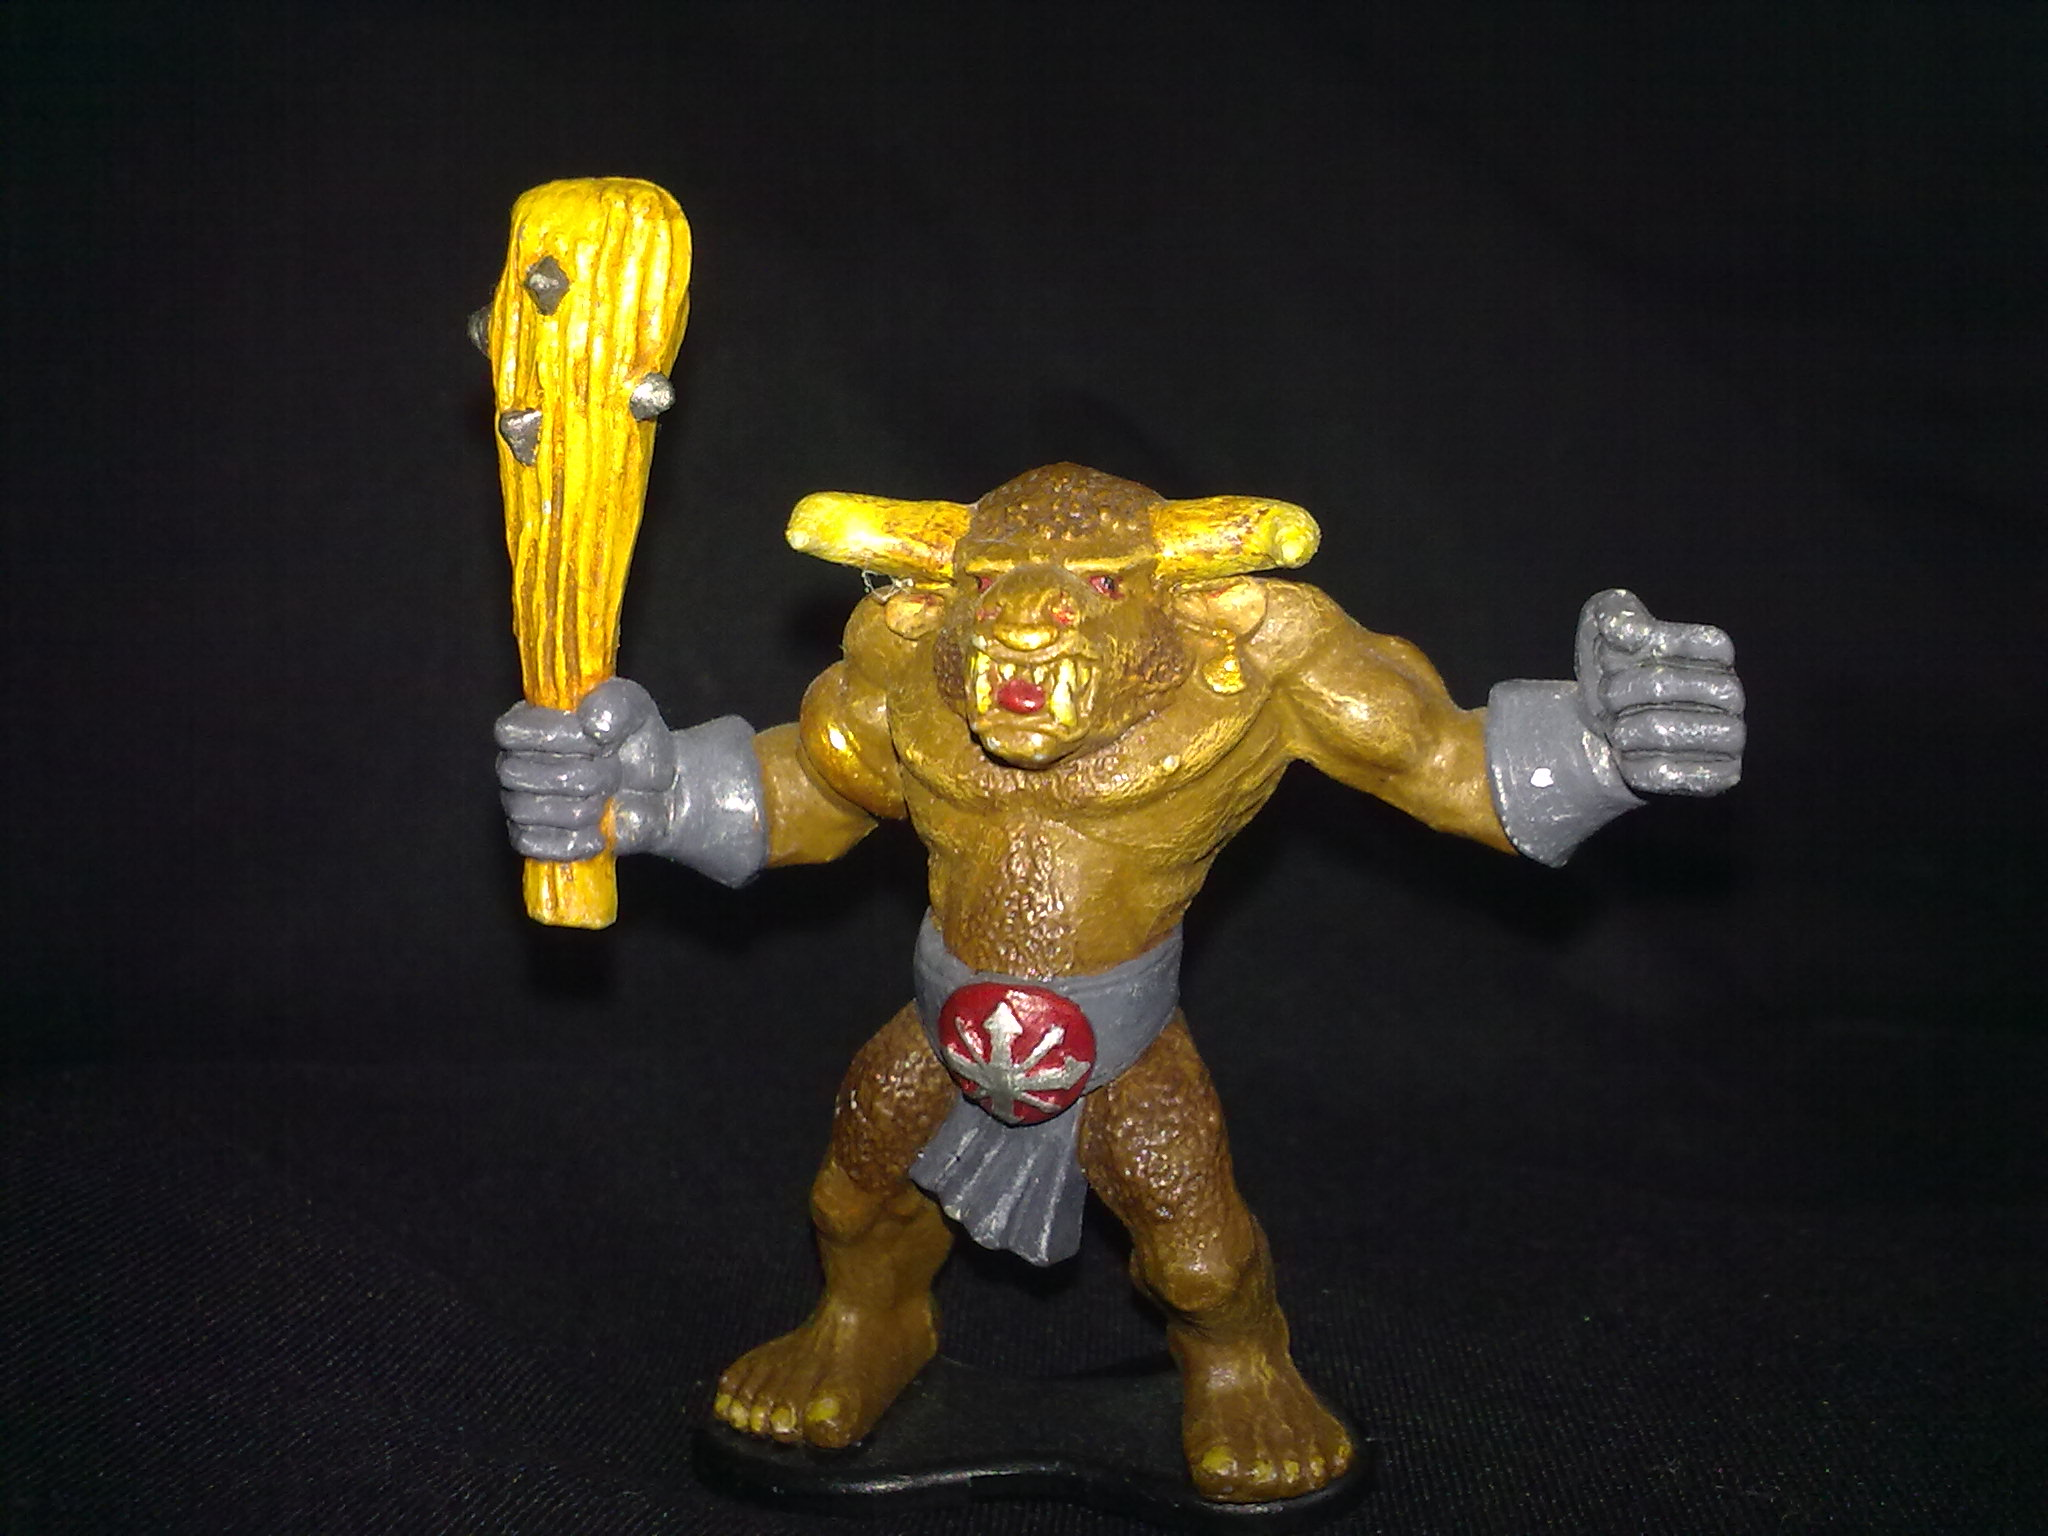 Minotaur, painted by Lumpin' Croop